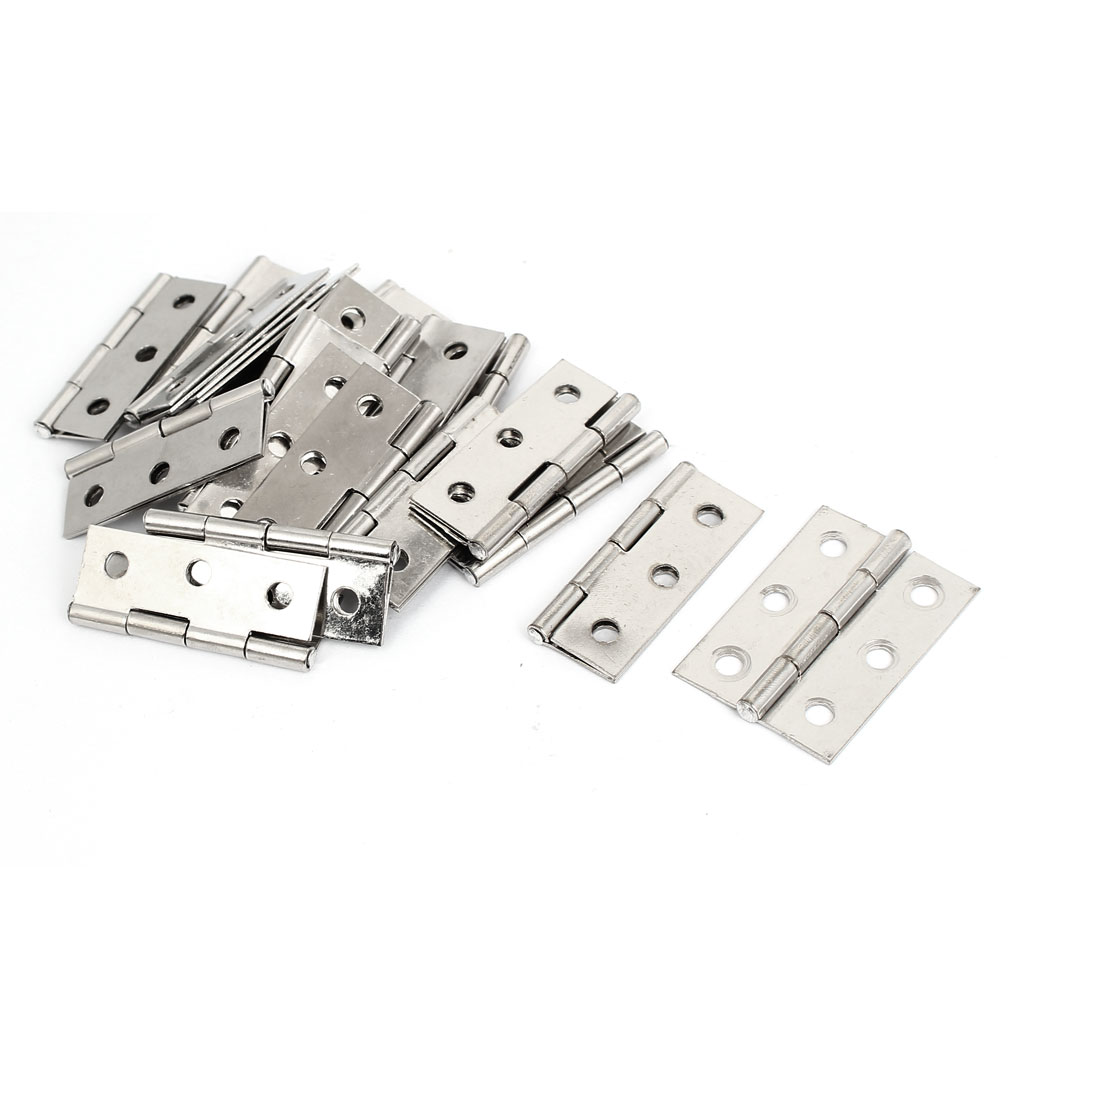 "Cabinet Closet Folding Stainless Steel Door Butt Hinge Hardware Silver Tone 2"" Long 20pcs"